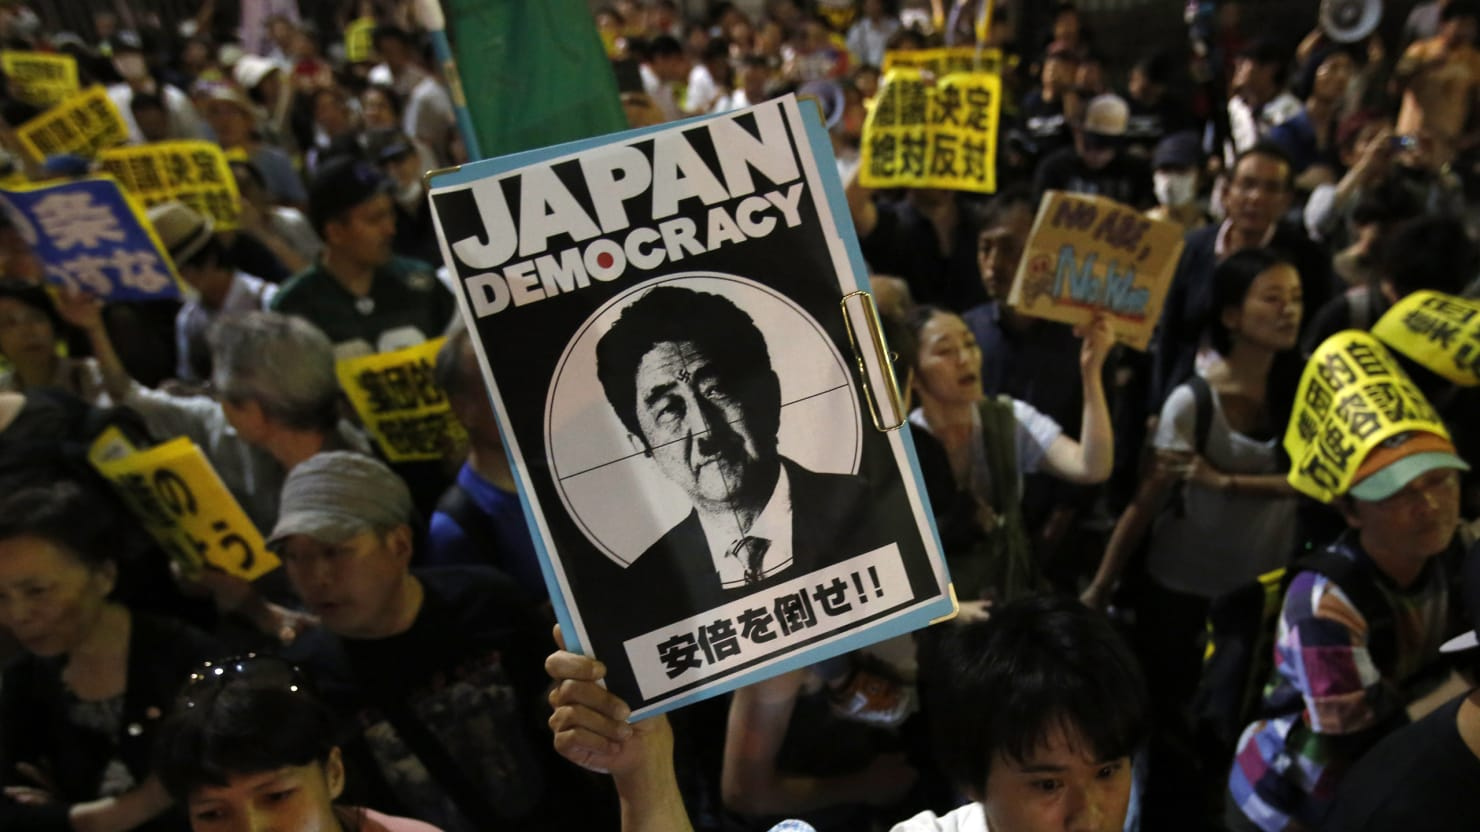 Suicidal Anti-war Protest Shocks Japan as It Rethinks Pacifist Constitution